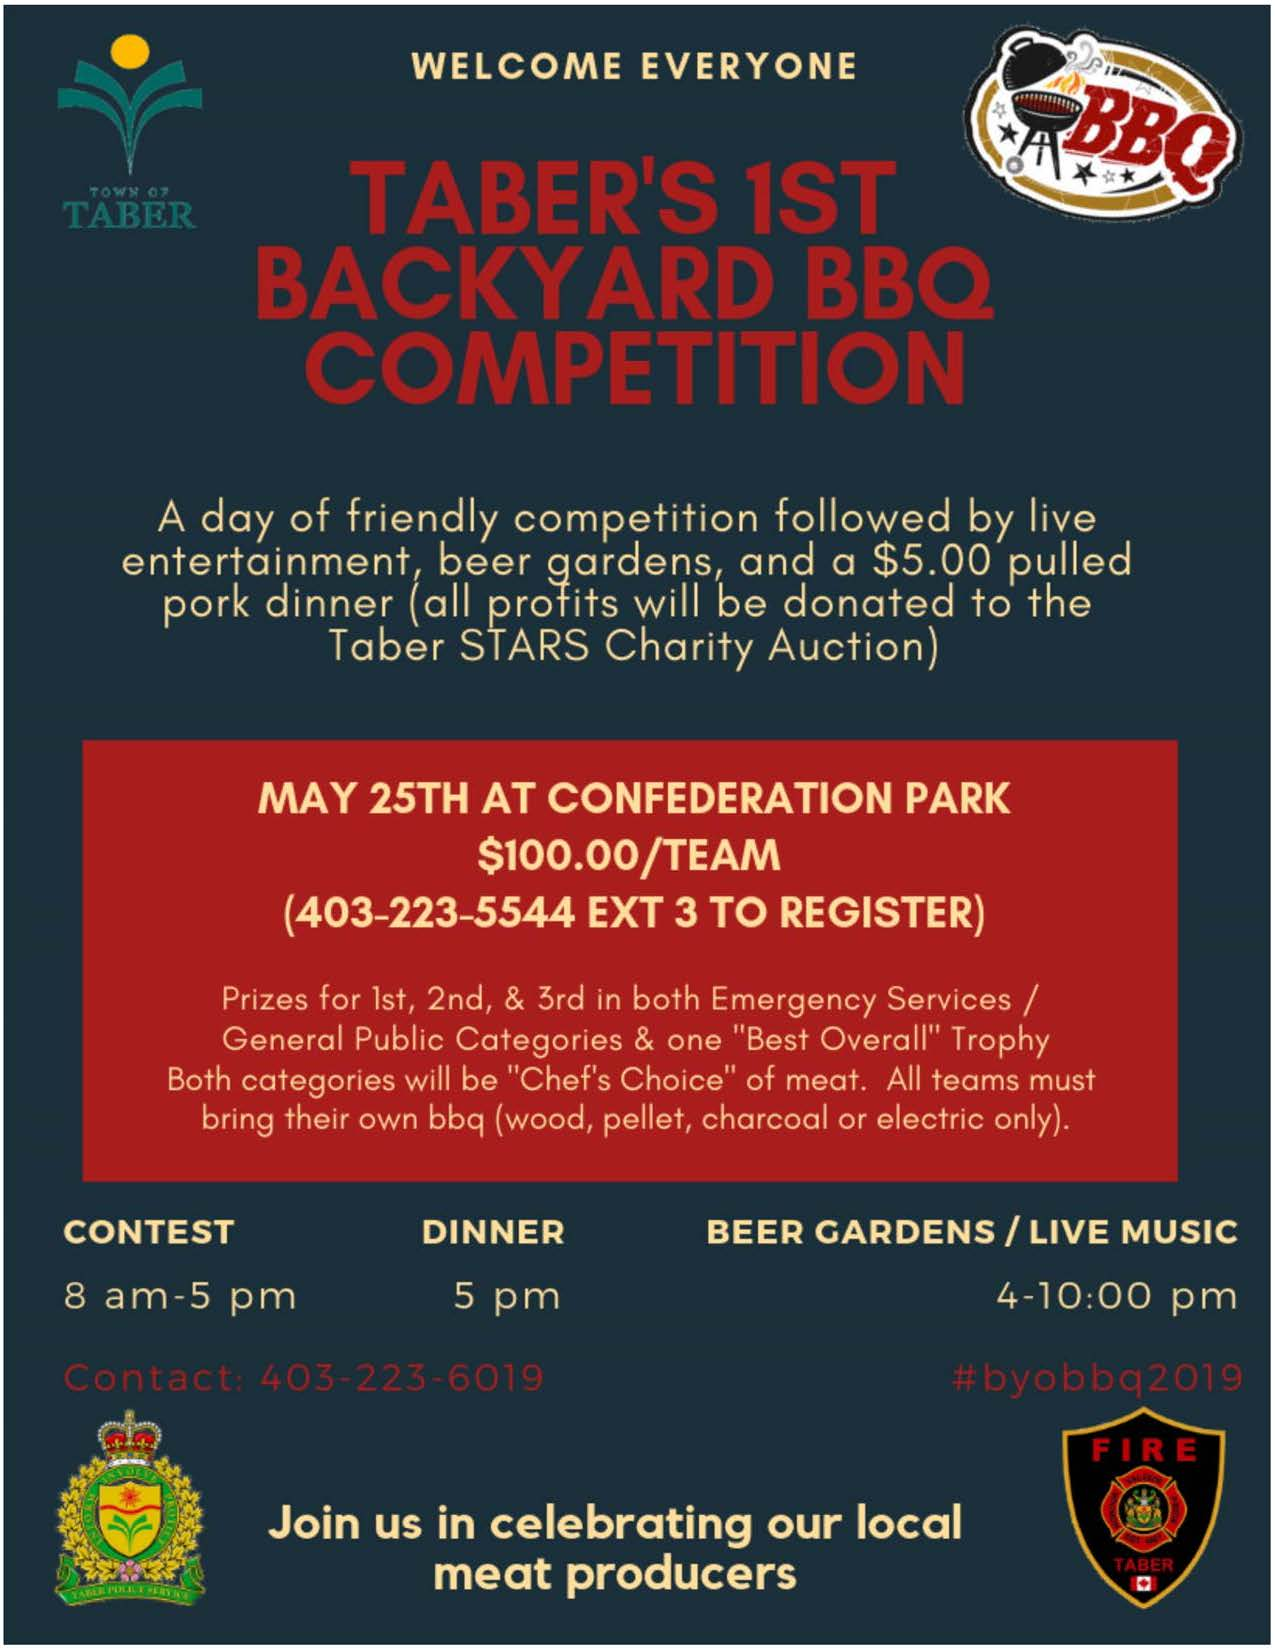 2019 Taber's Backyard BBQ Competition poster